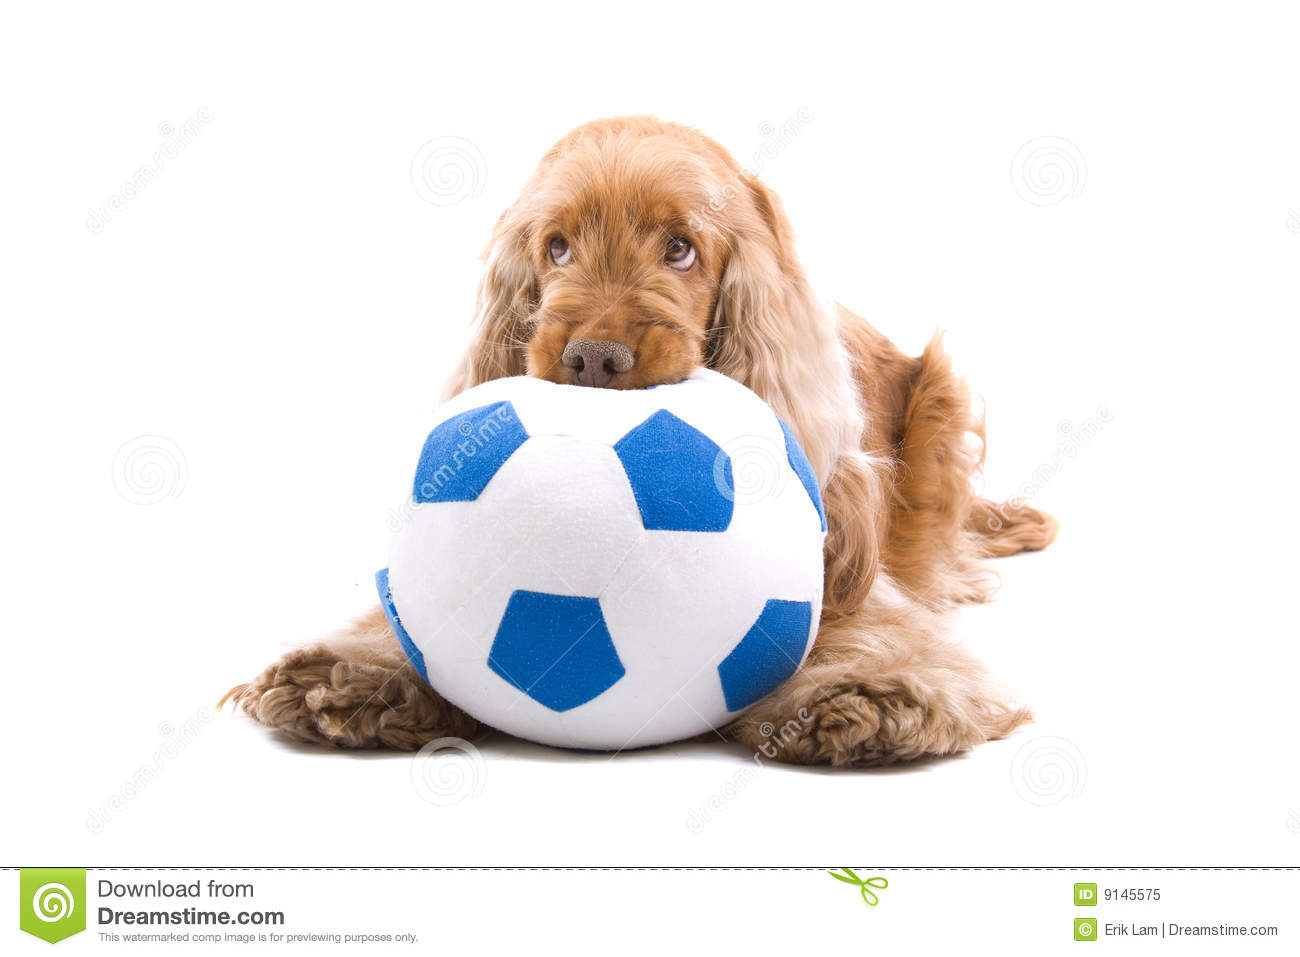 Cute dog chewing soccer ball